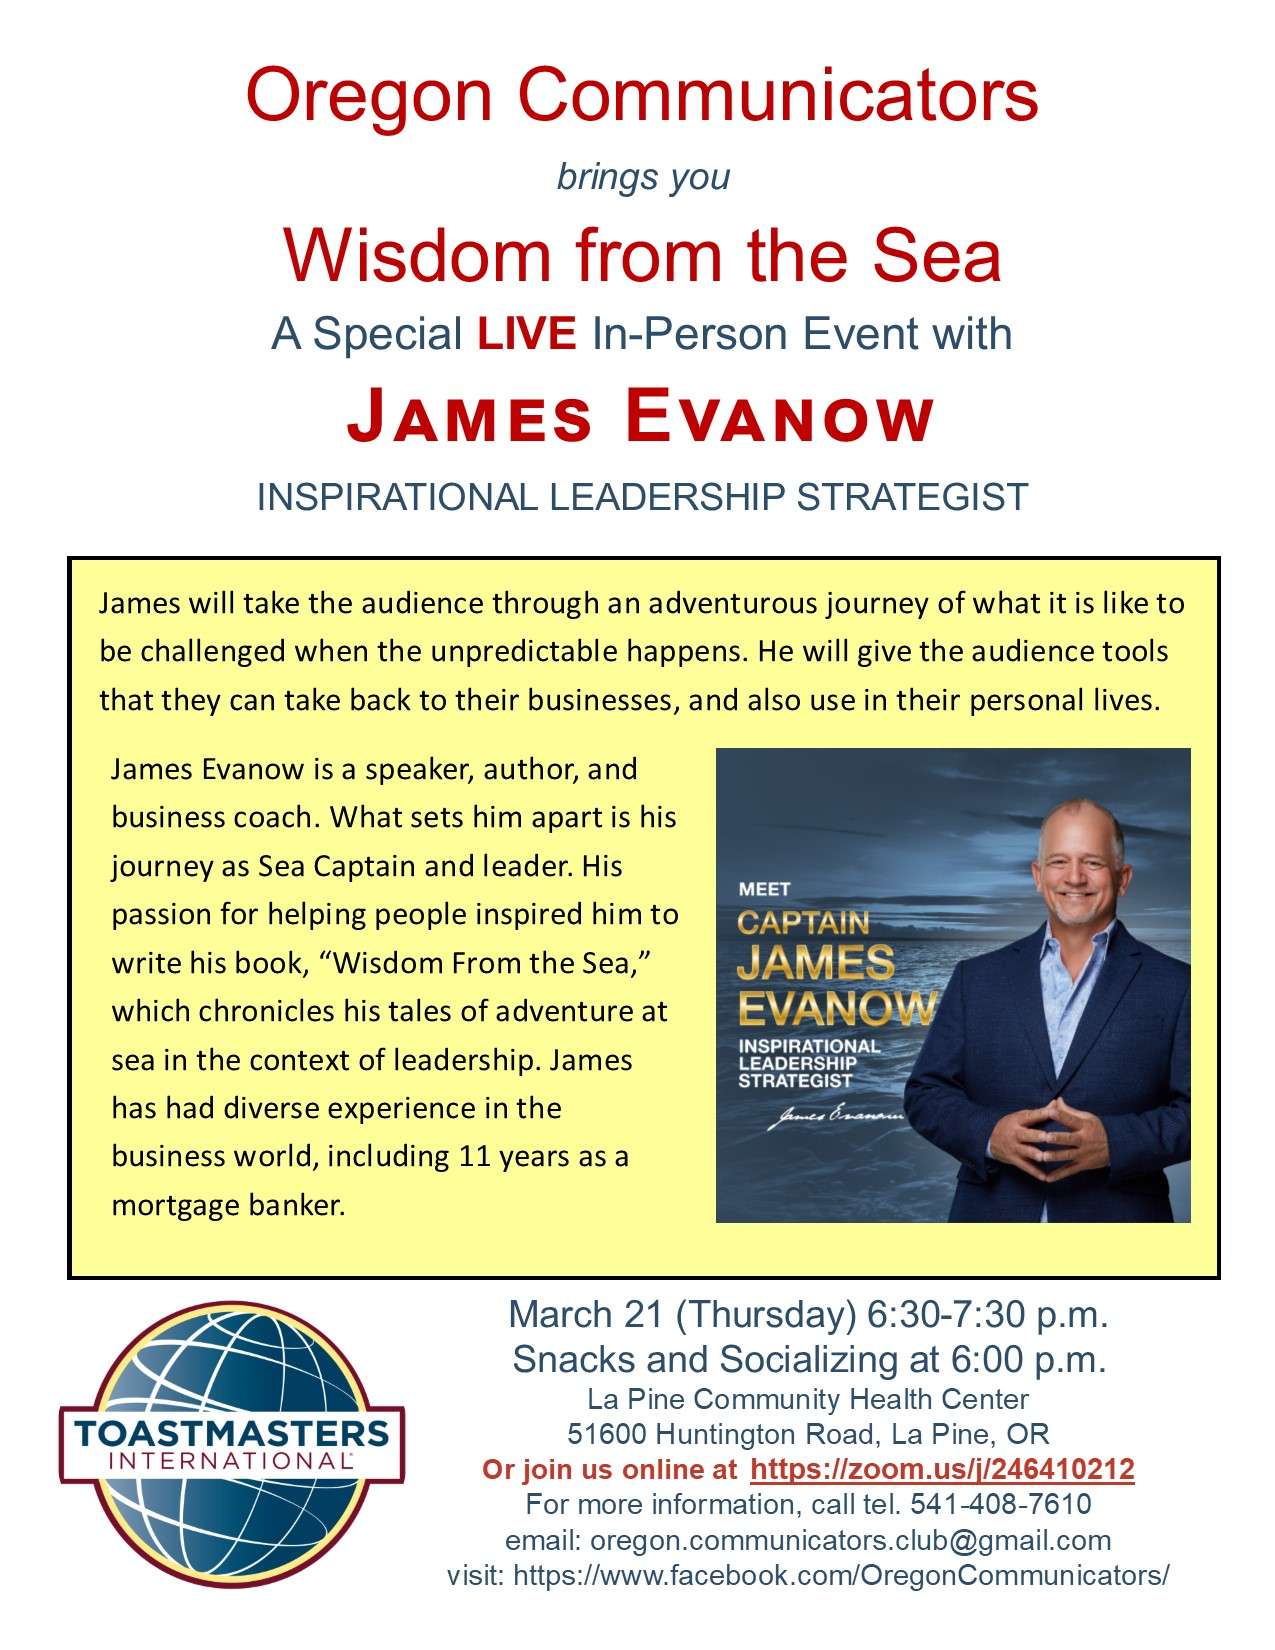 Oregon Communicators brings you Wisdom from the Sea with James Evanow @ La Pine Community Health Center Meeting Room